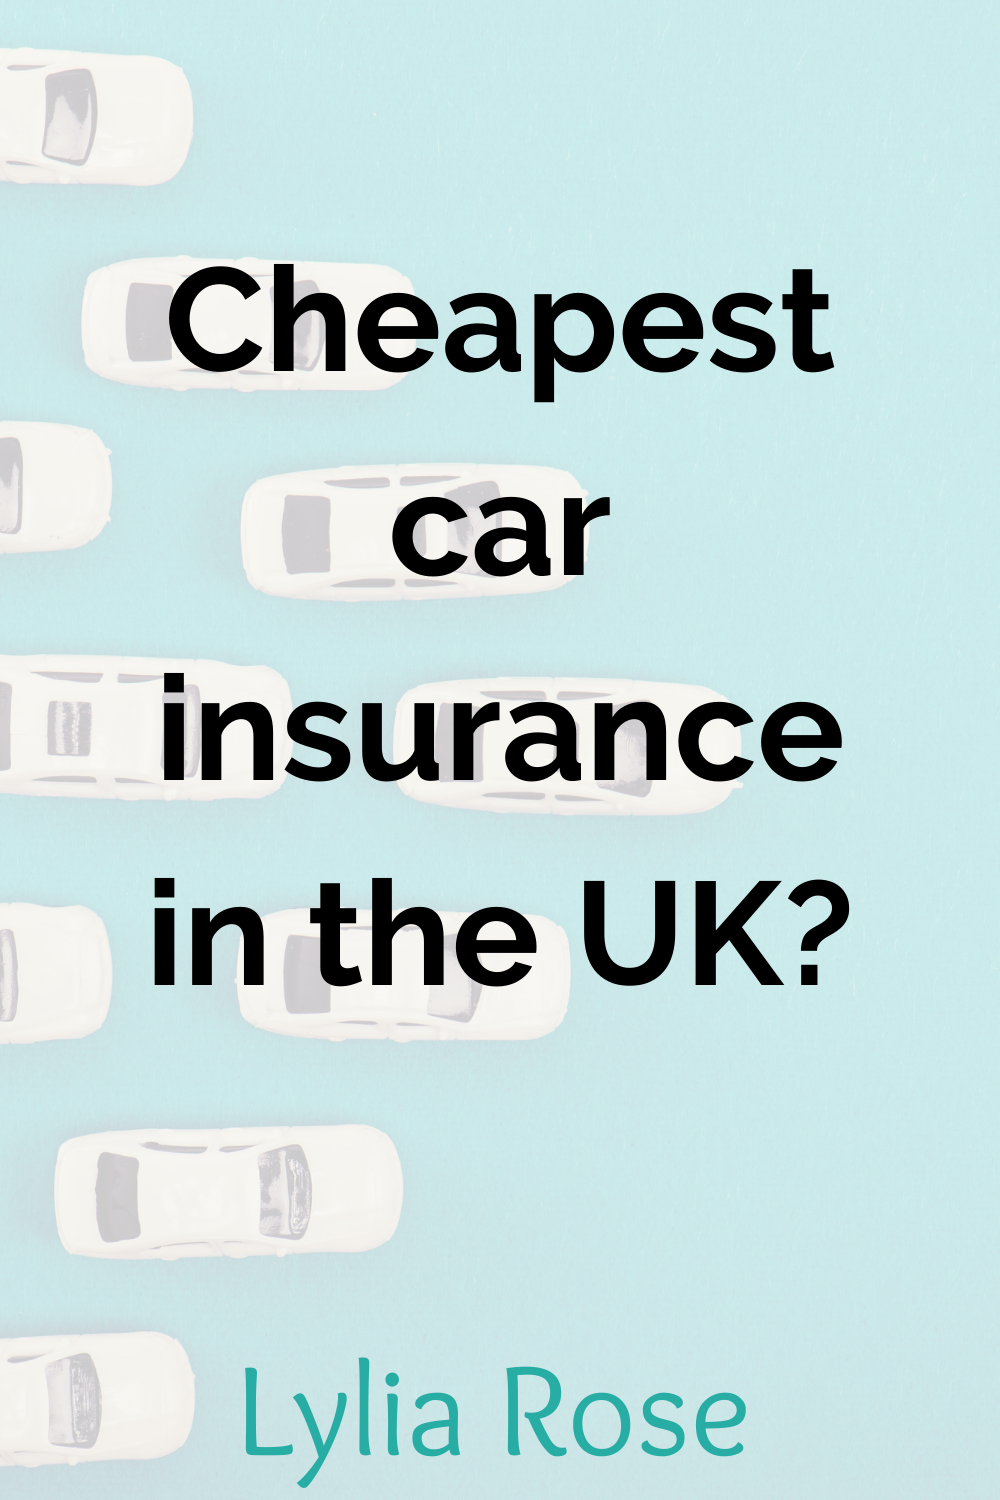 Mustard car insurance comparison promises to beat your